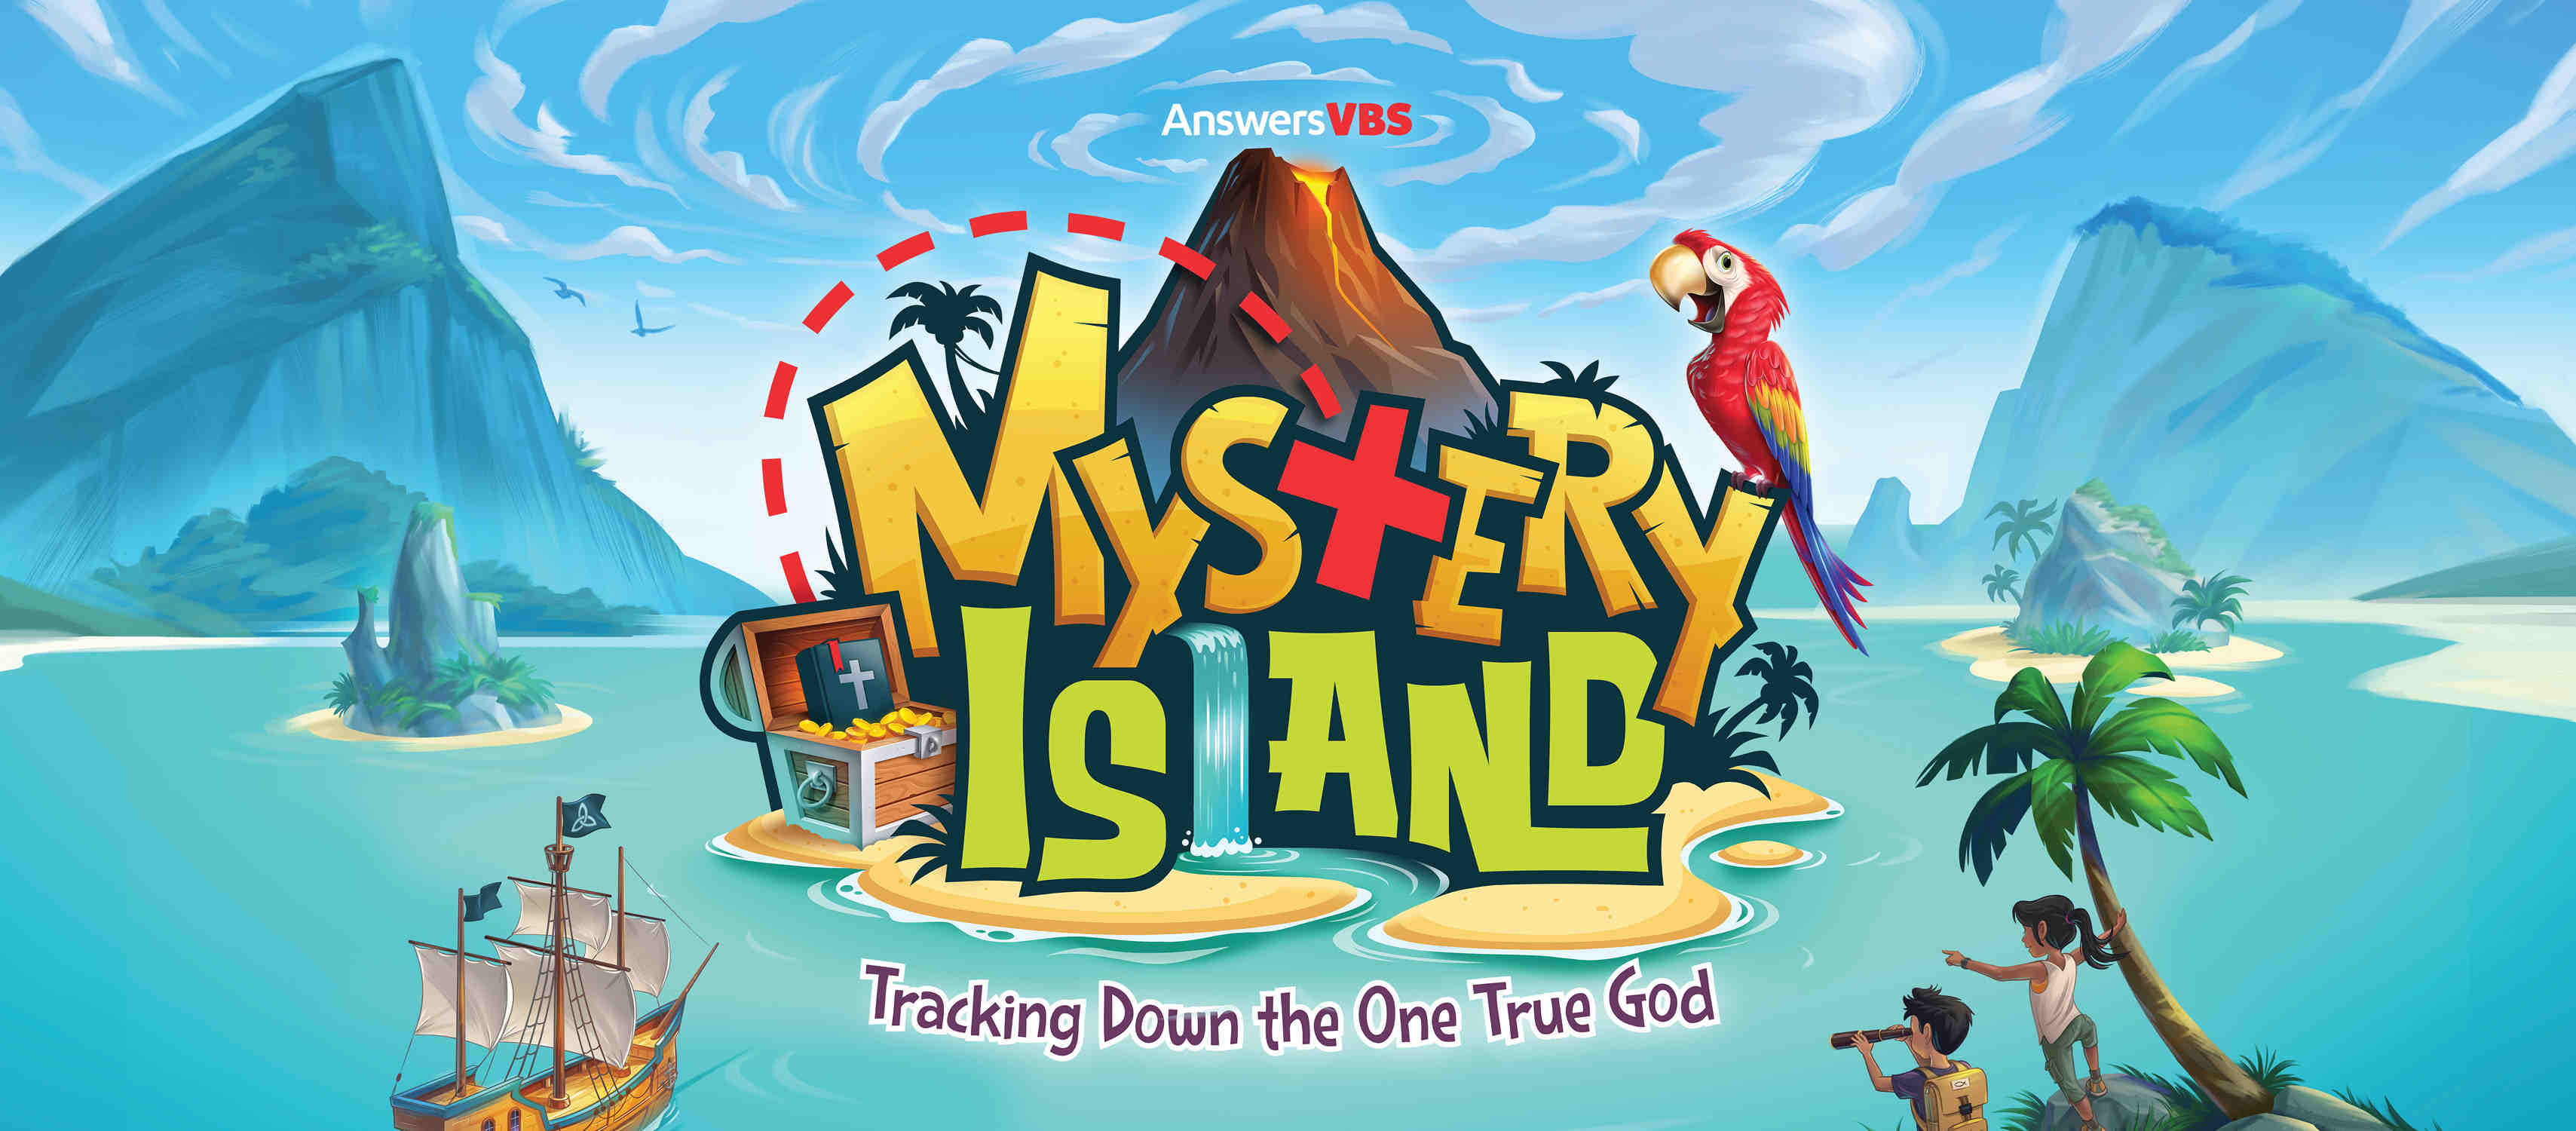 images/specialevents/VBS_Mystery_Island.jpg